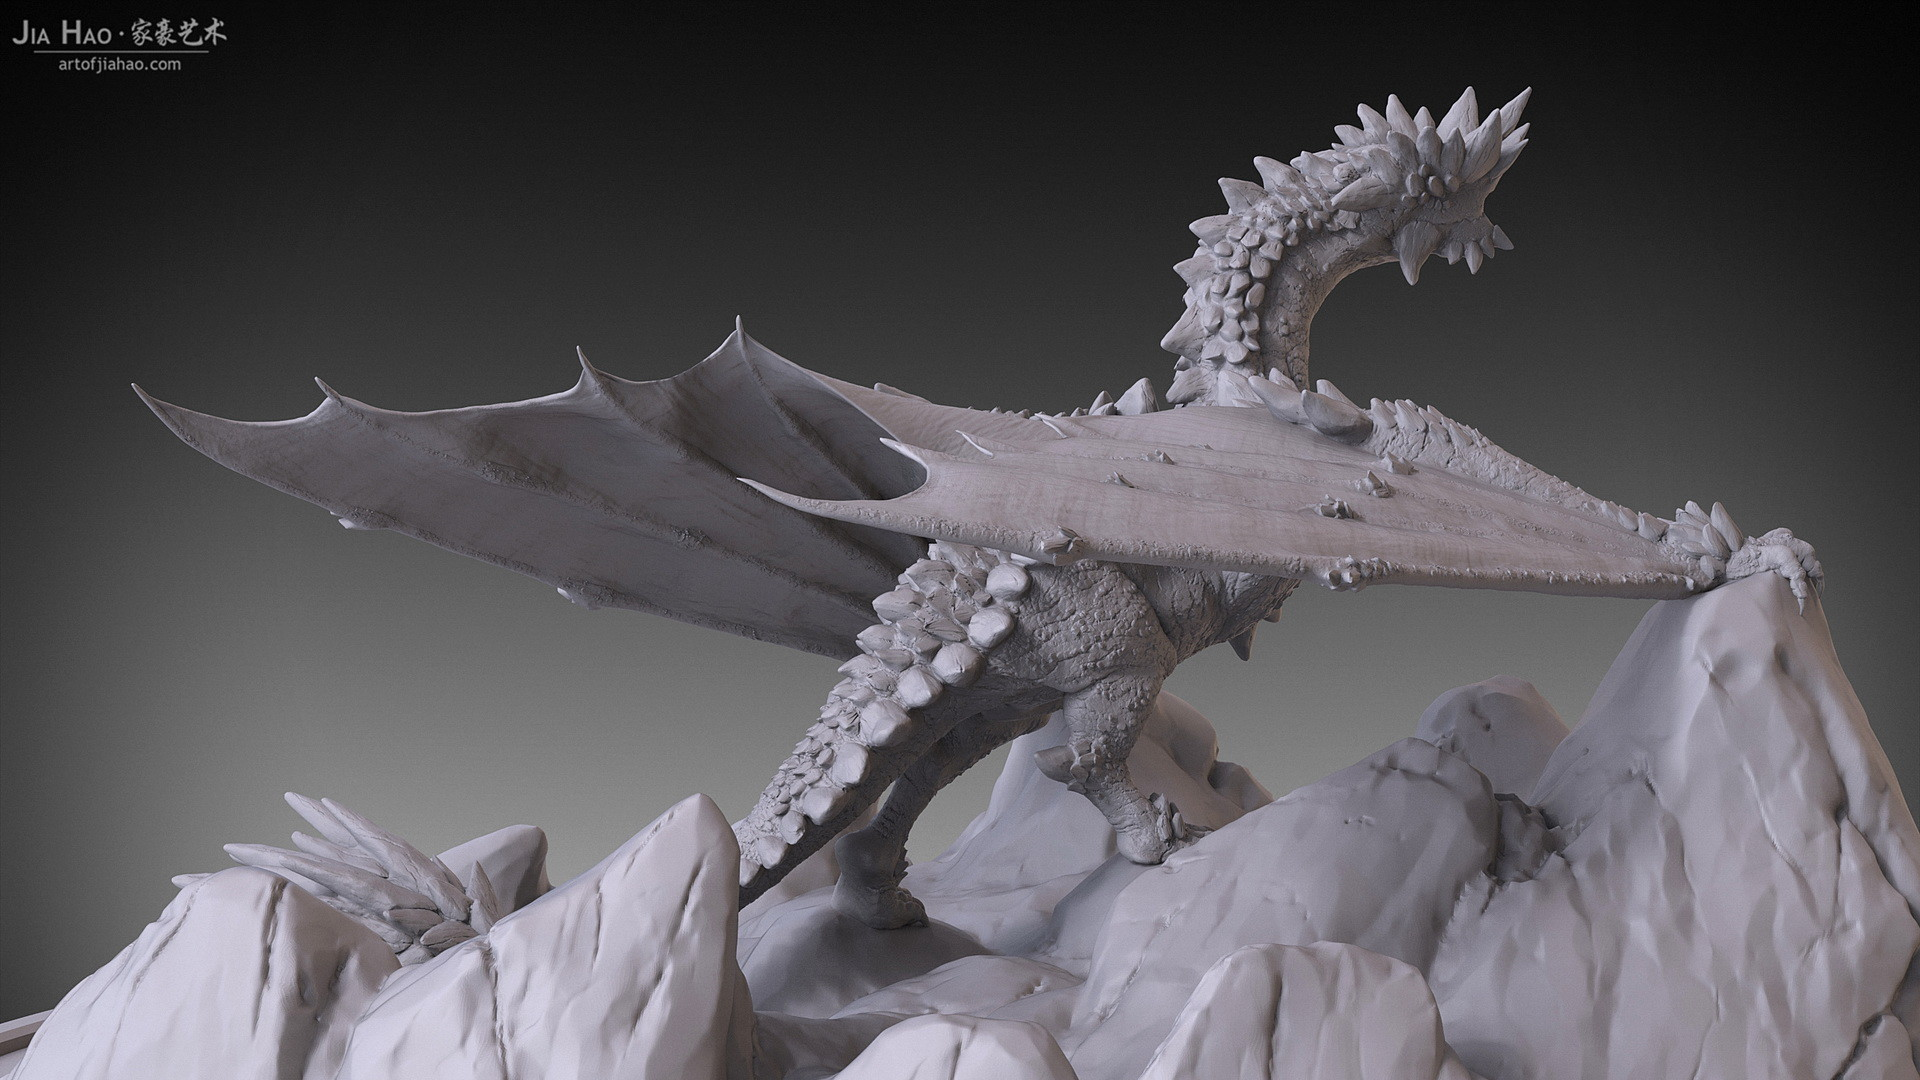 Jia hao 2017 rockdragon digitalsculpting 03